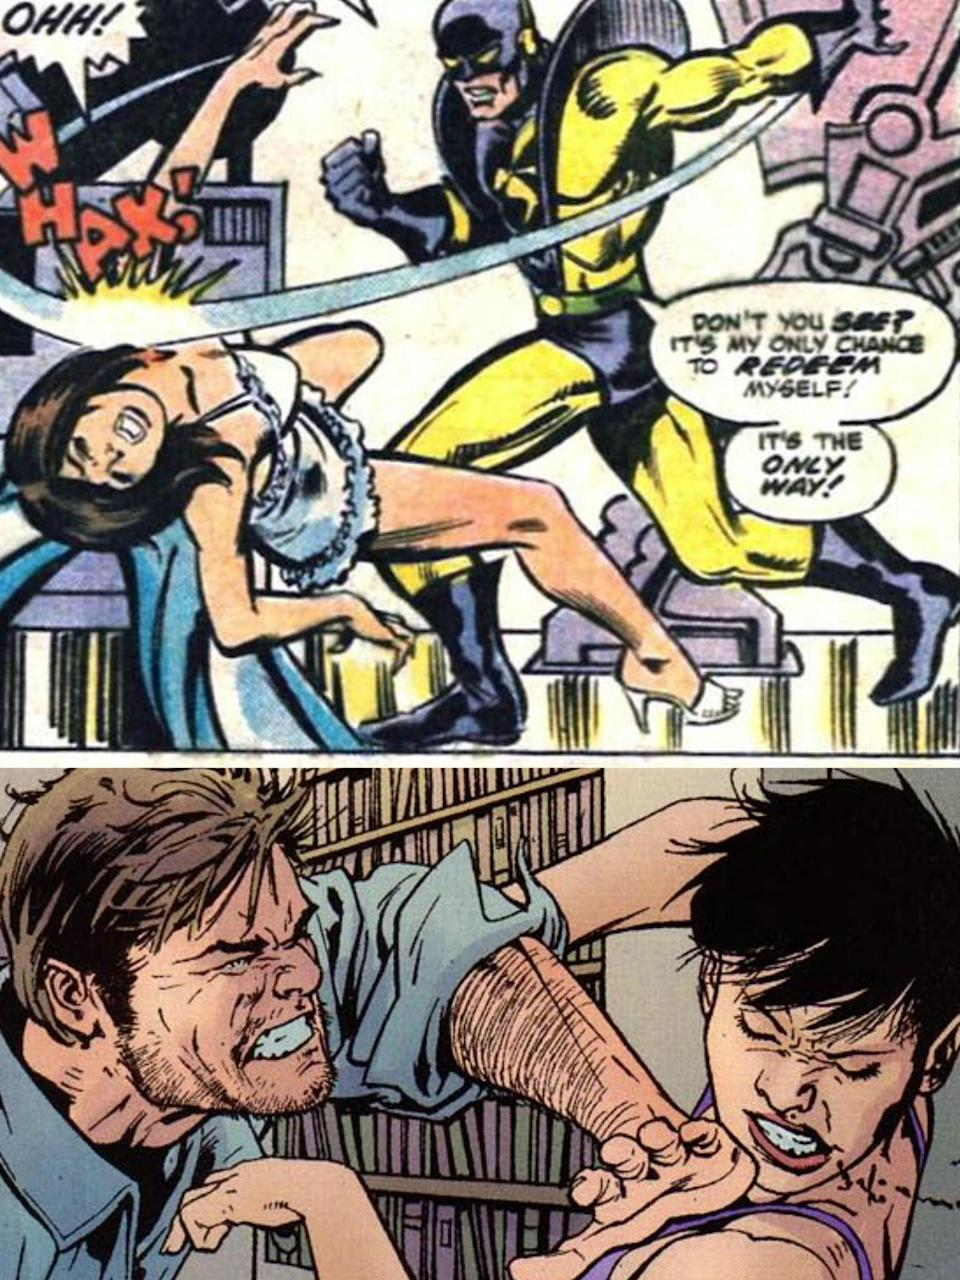 Hank Pym has been depicted as abusive to wife Janet in the Marvel comic books